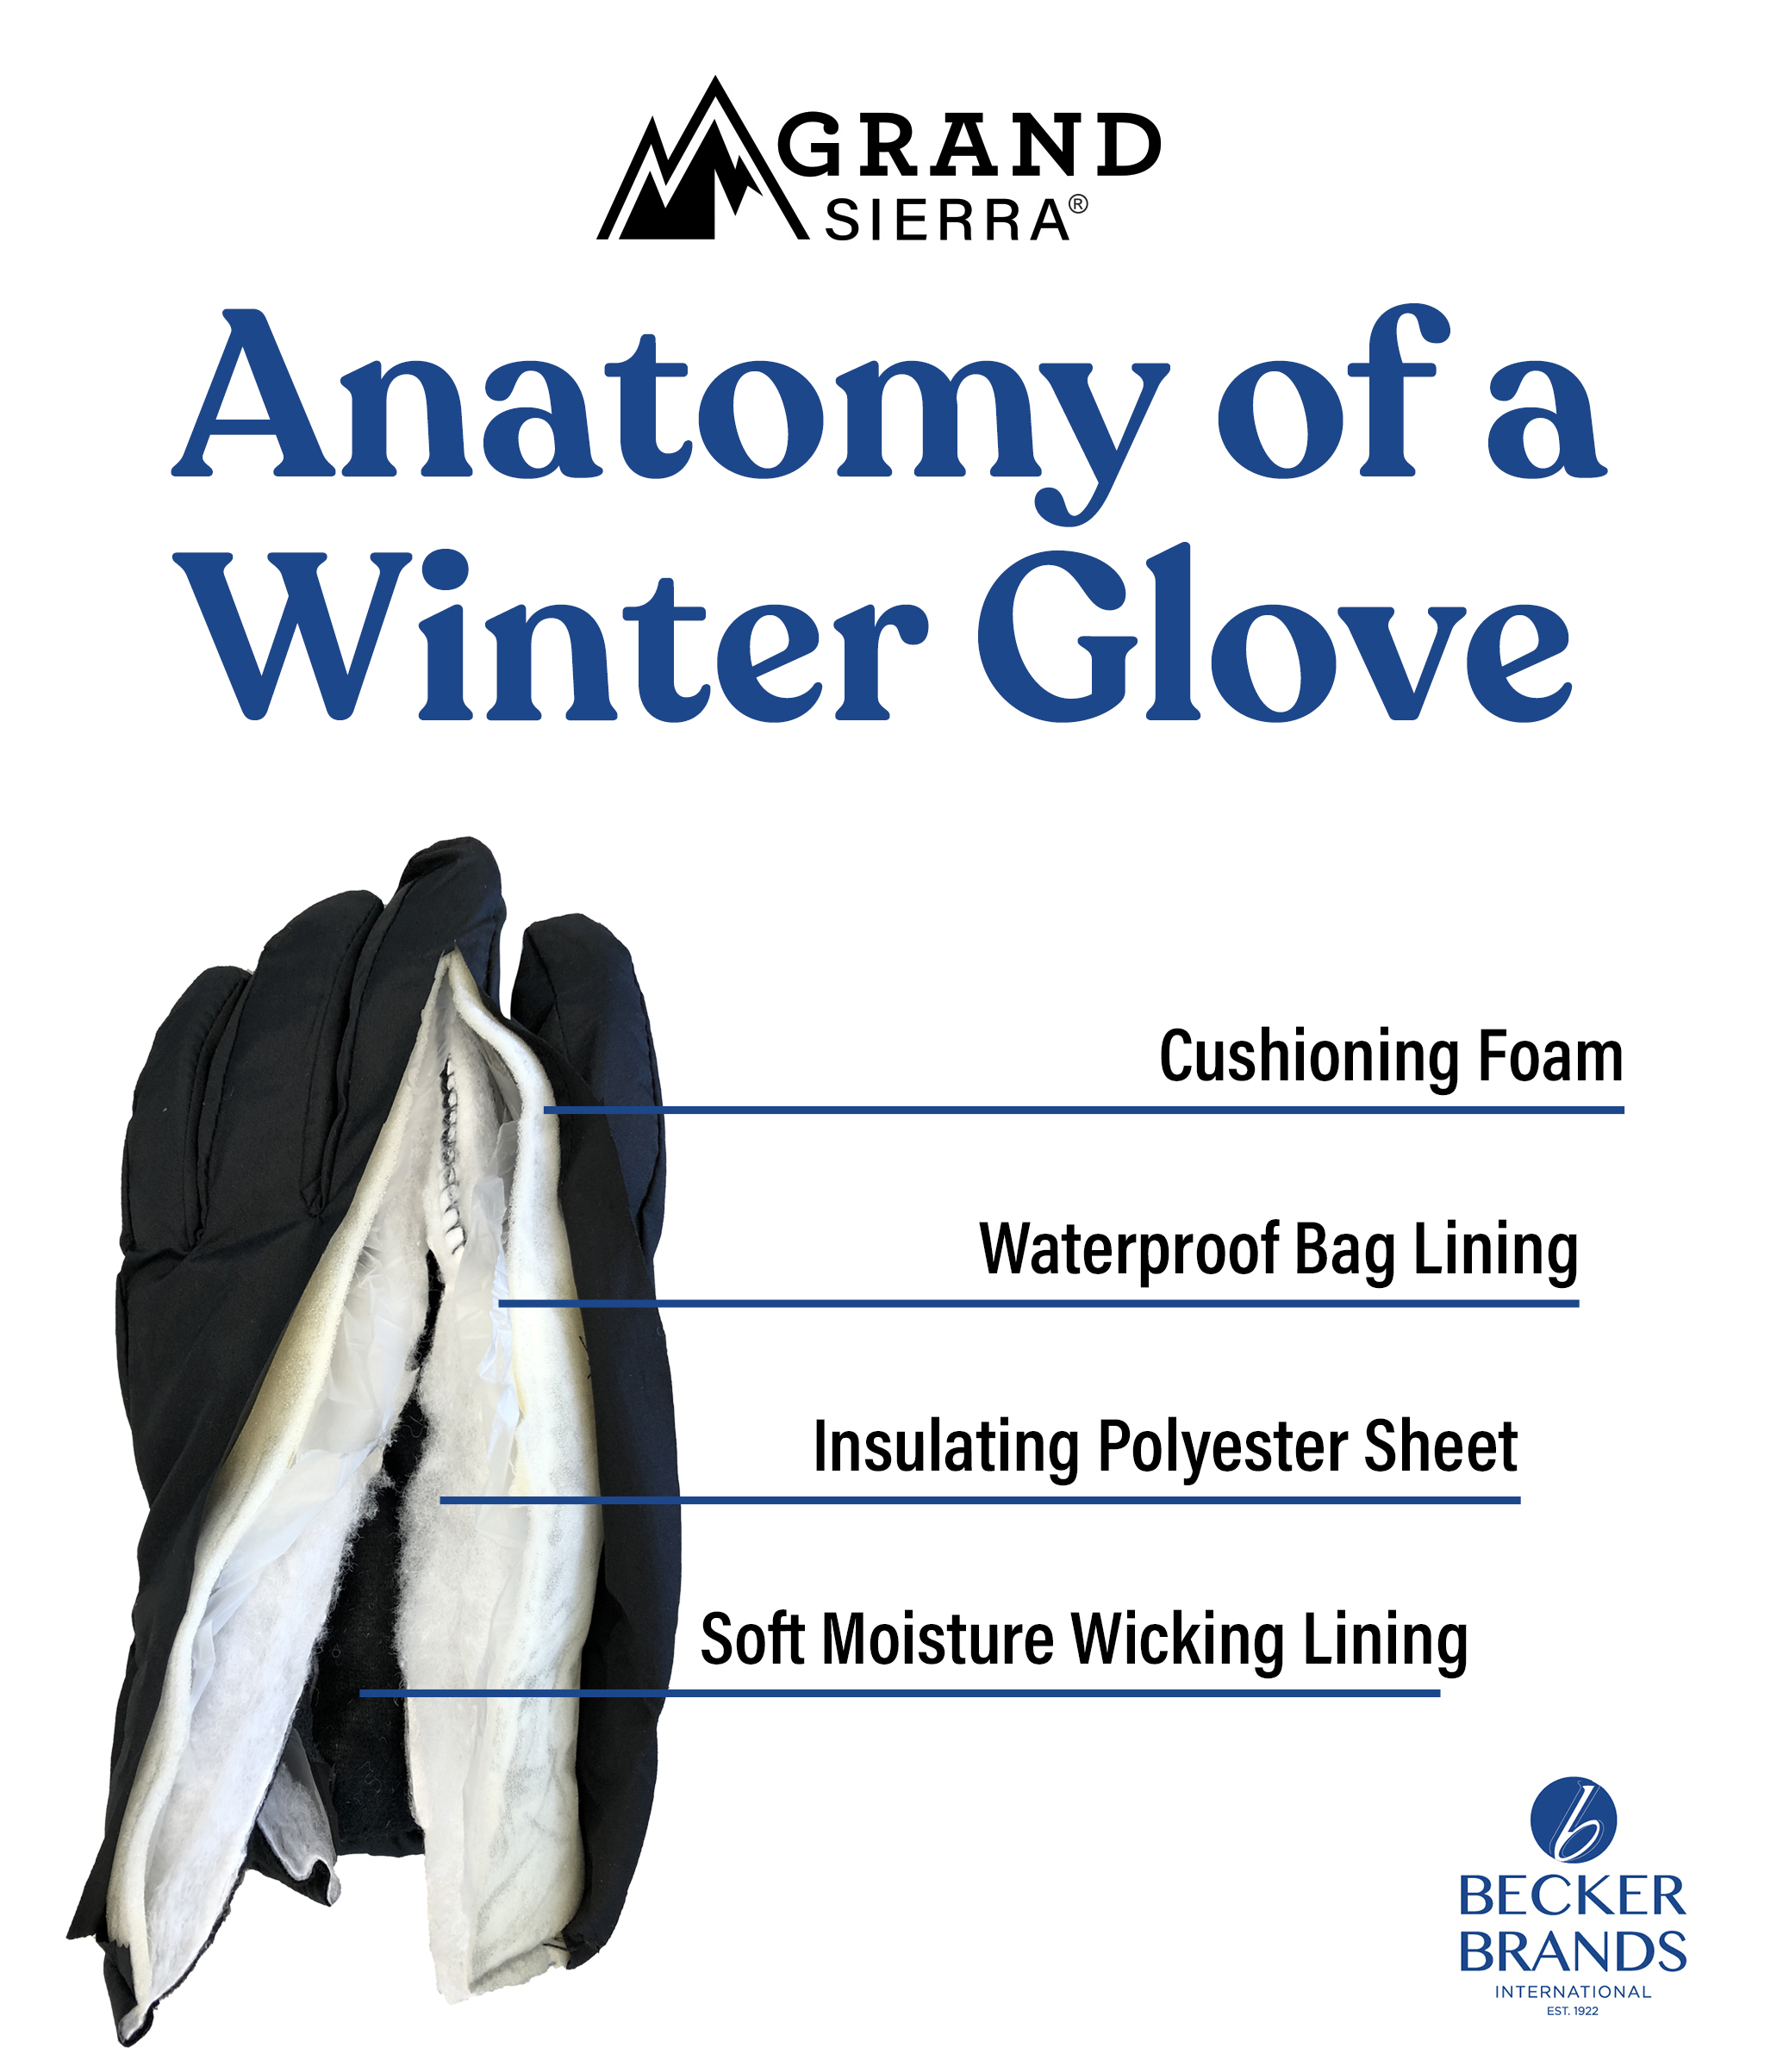 Grand Sierra's Anatomy of Winter Gloves. Cushioning foam, Waterproof Bag Lining, Insulating Polyester Sheet, and Soft Moisture Wicking Lining.